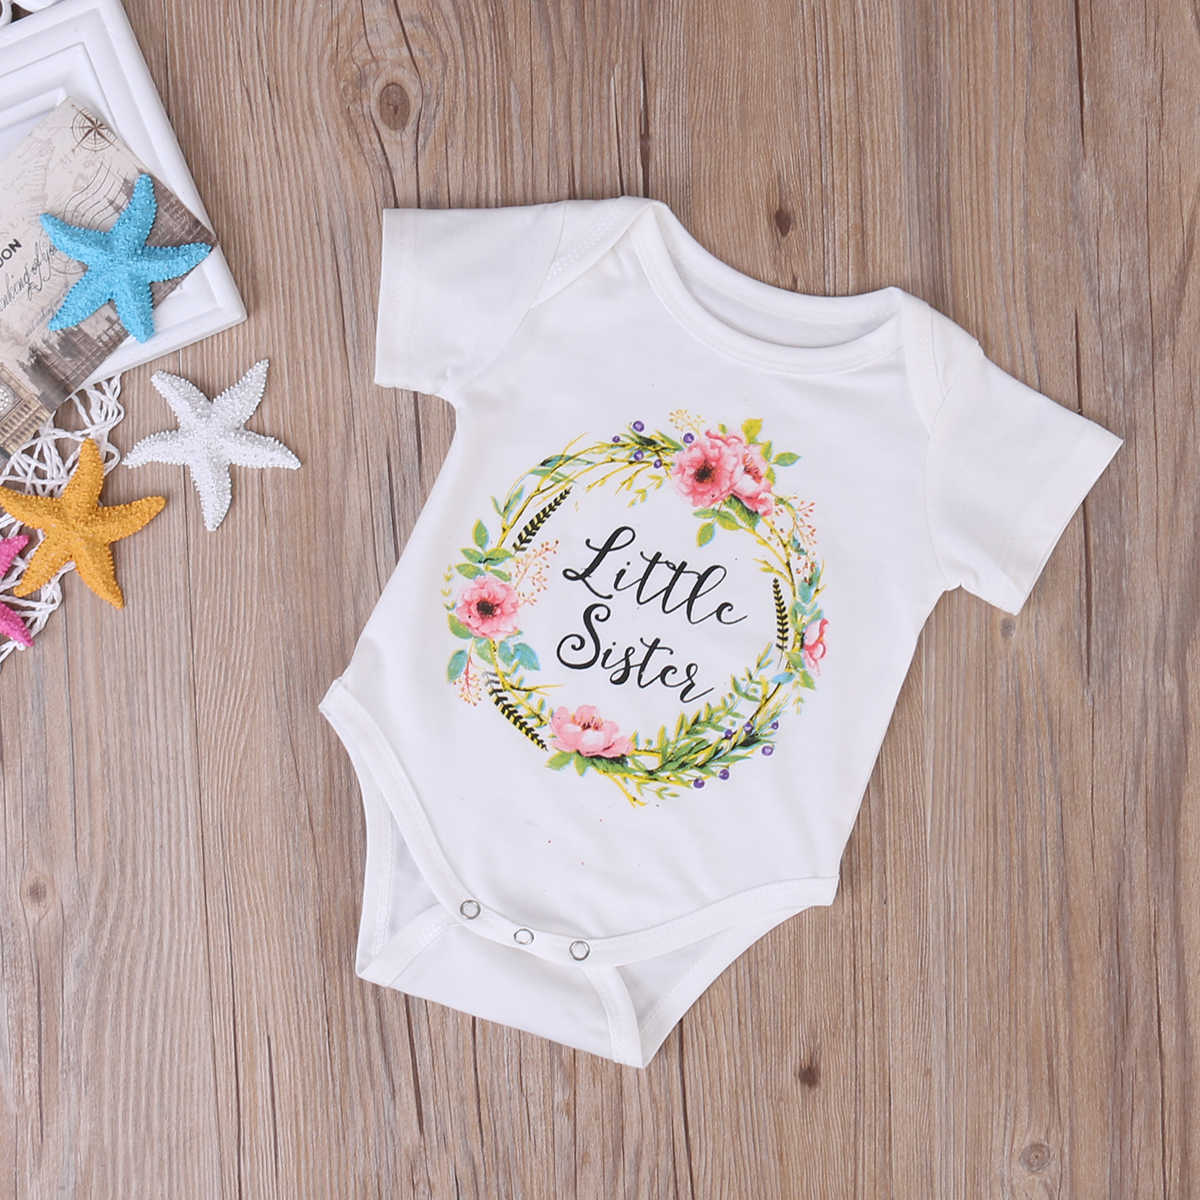 7d68b29856e2a pudcoco Family Clothing Set Baby Kids Girls 2019 New Little Big Sister  Short Sleeve Clothes Jumpsuit Romper Outfits T Shirts